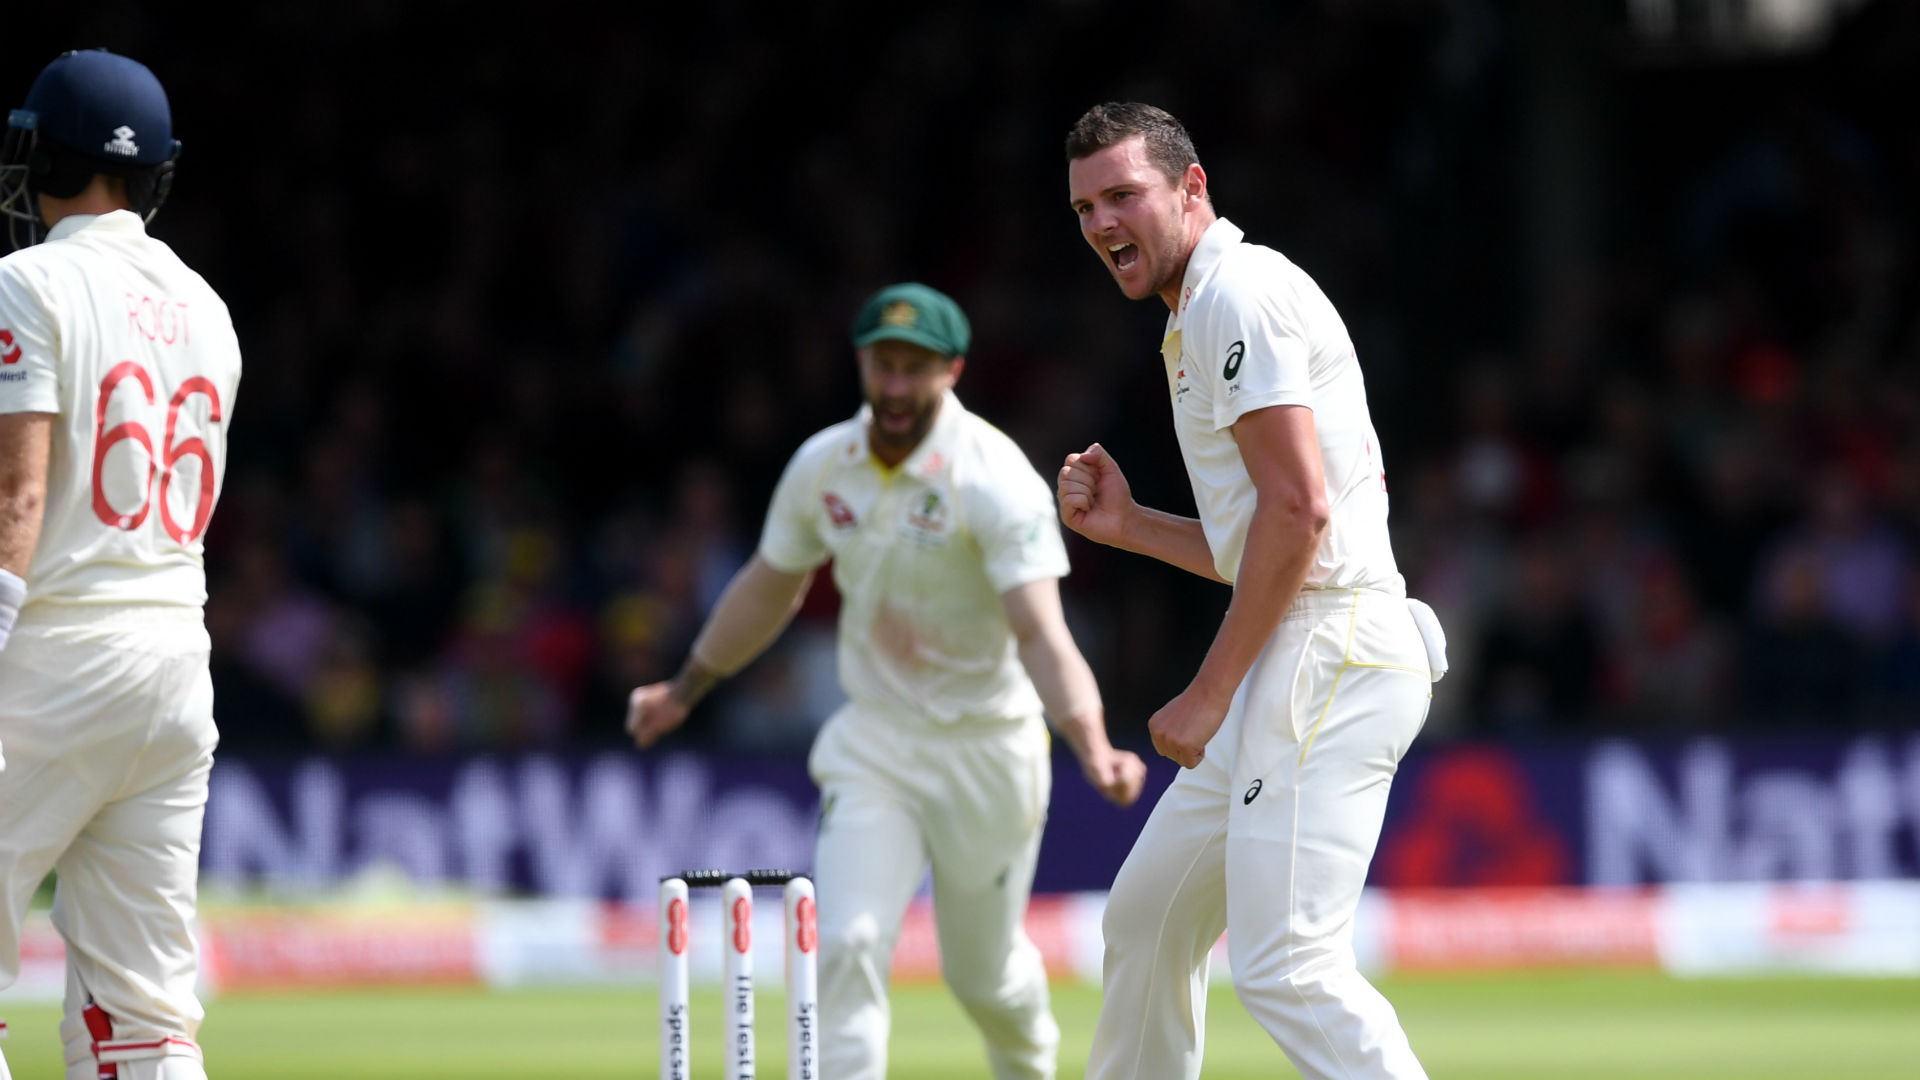 Ashes 2019: Hazlewood leads the charge as Aussies tighten grip at Lord's